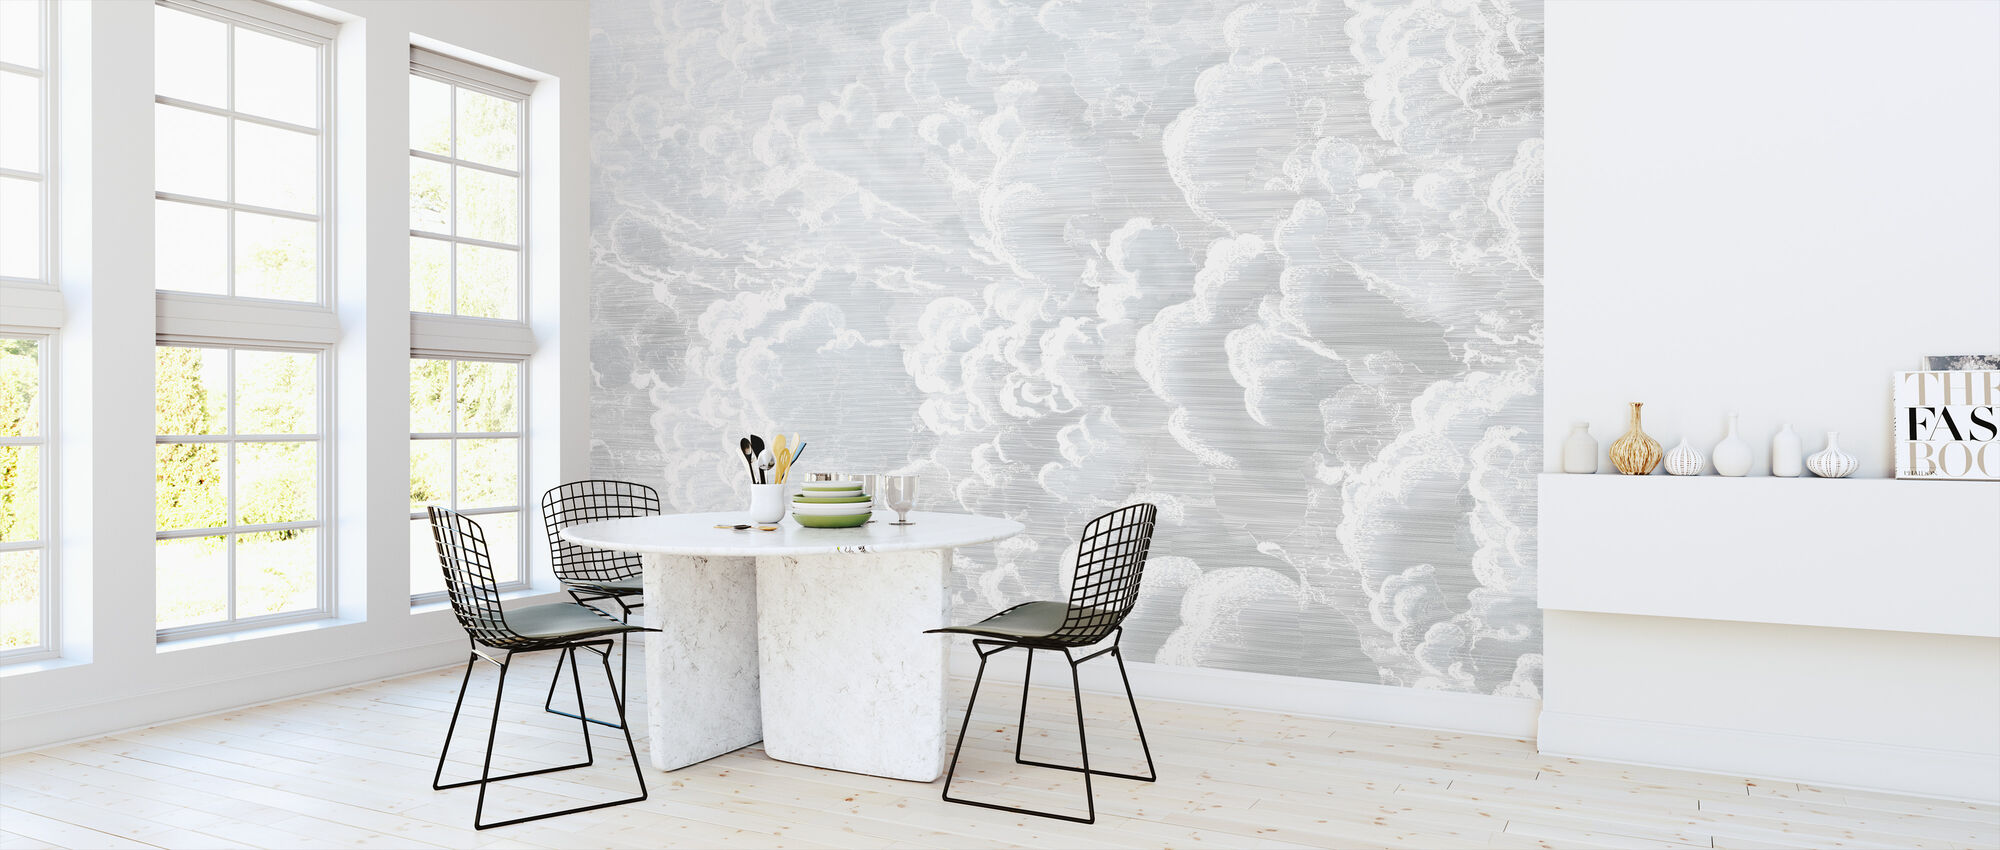 Cradled in Clouds - Wallpaper - Kitchen